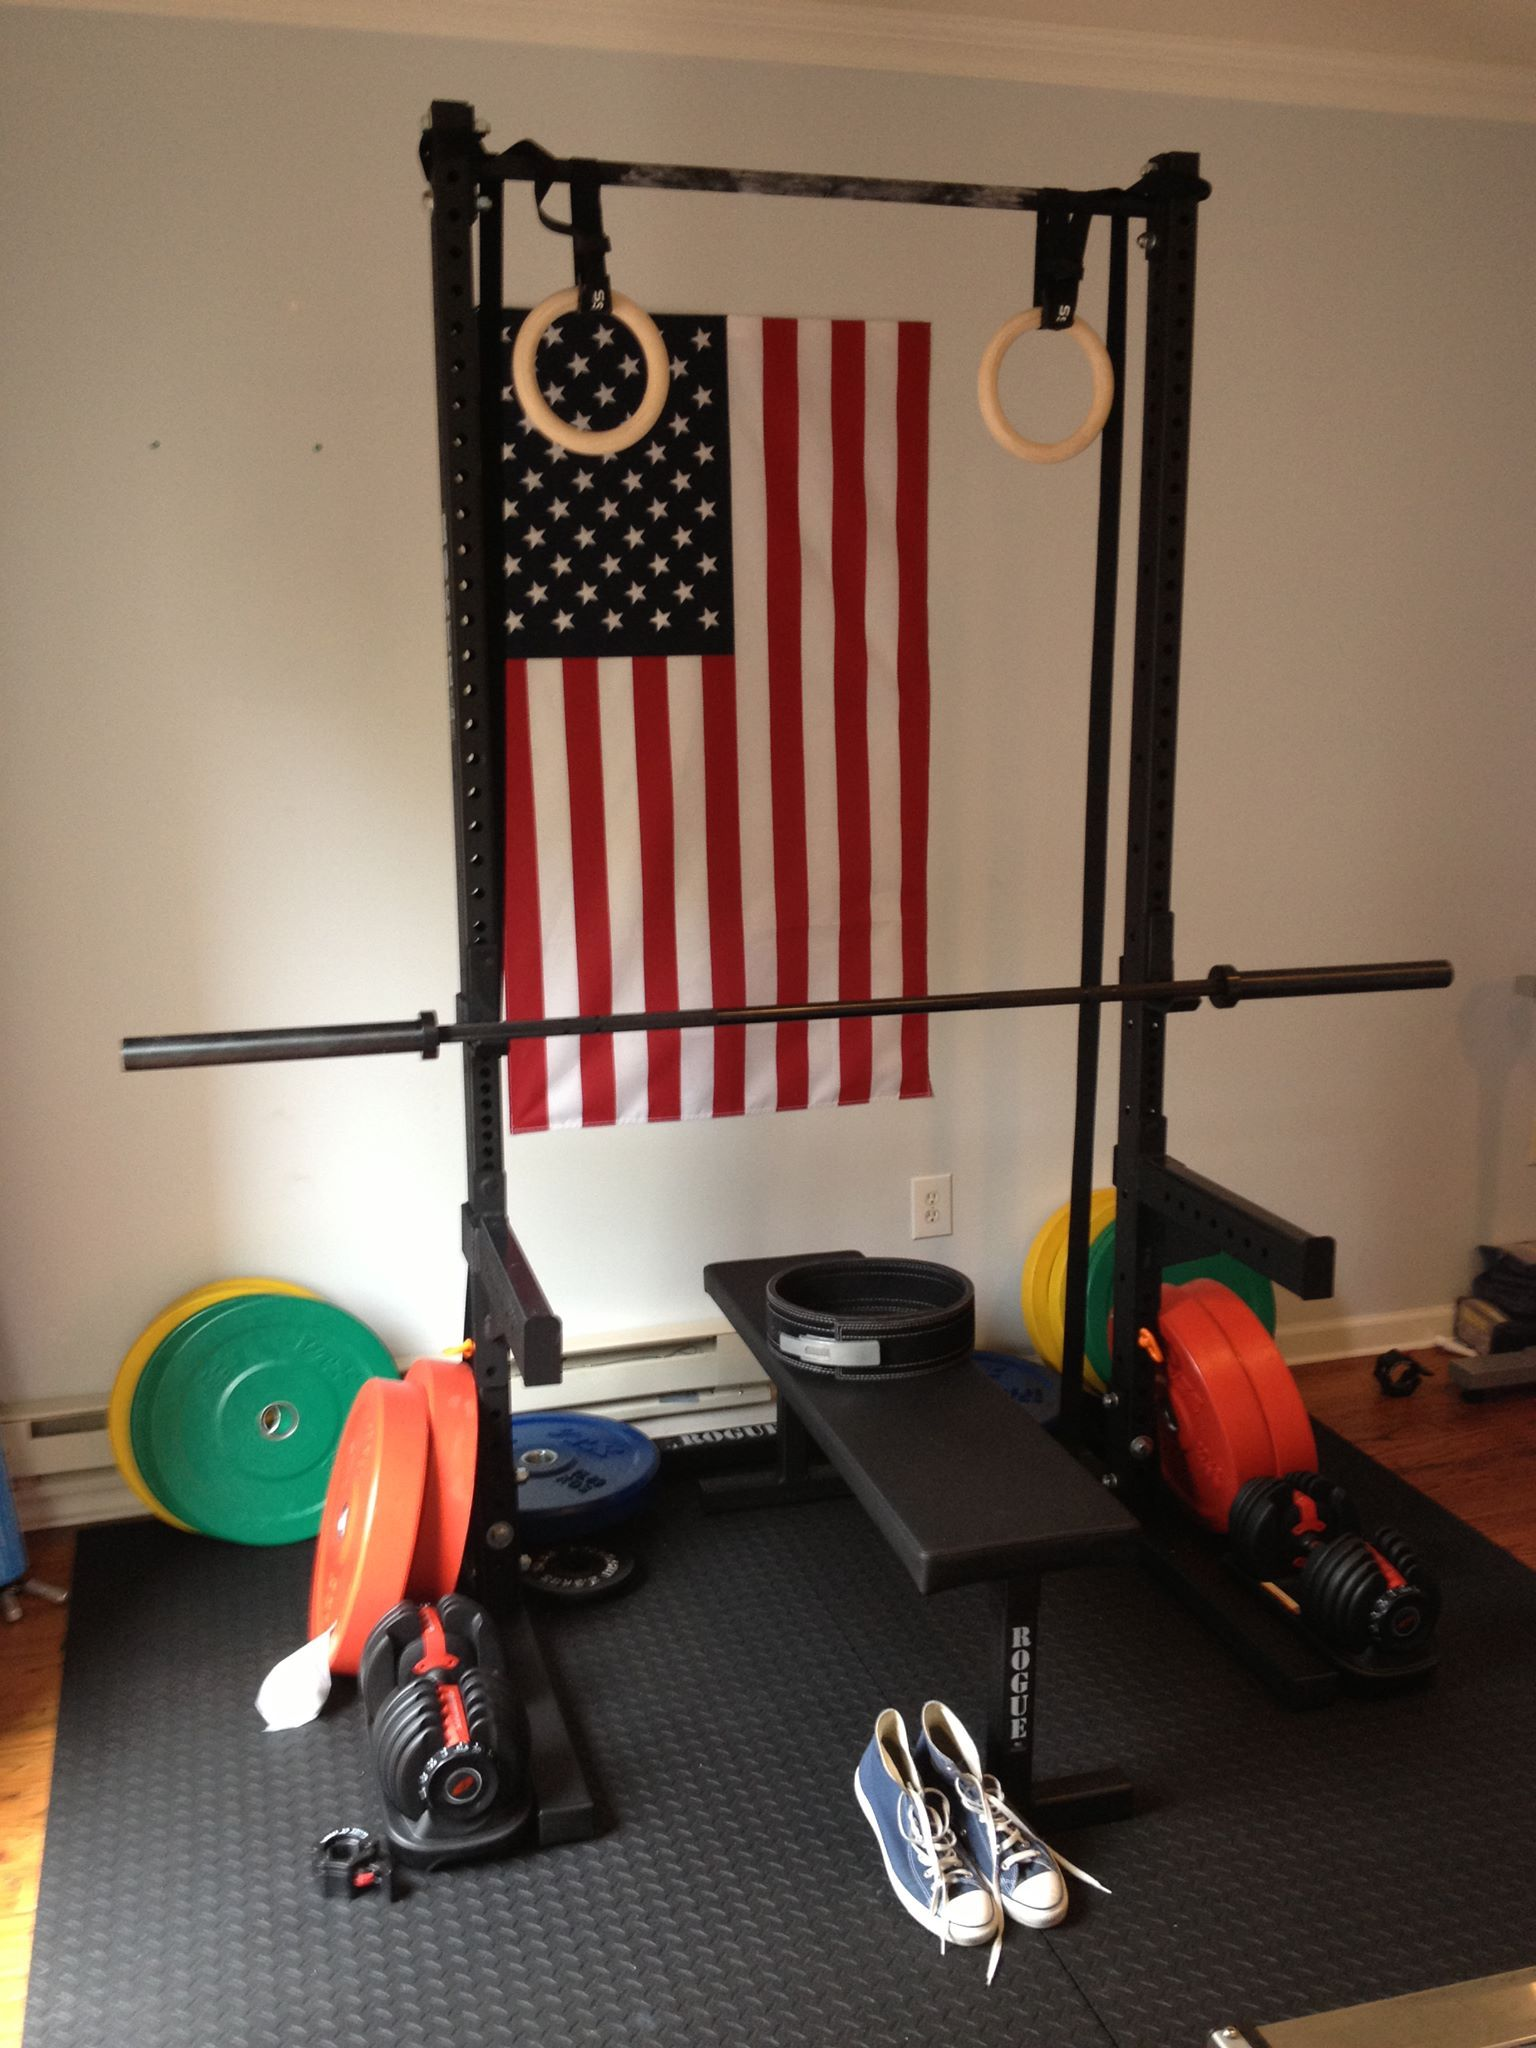 Rogue fitness garage gym courtesy of mark kloc s facebook